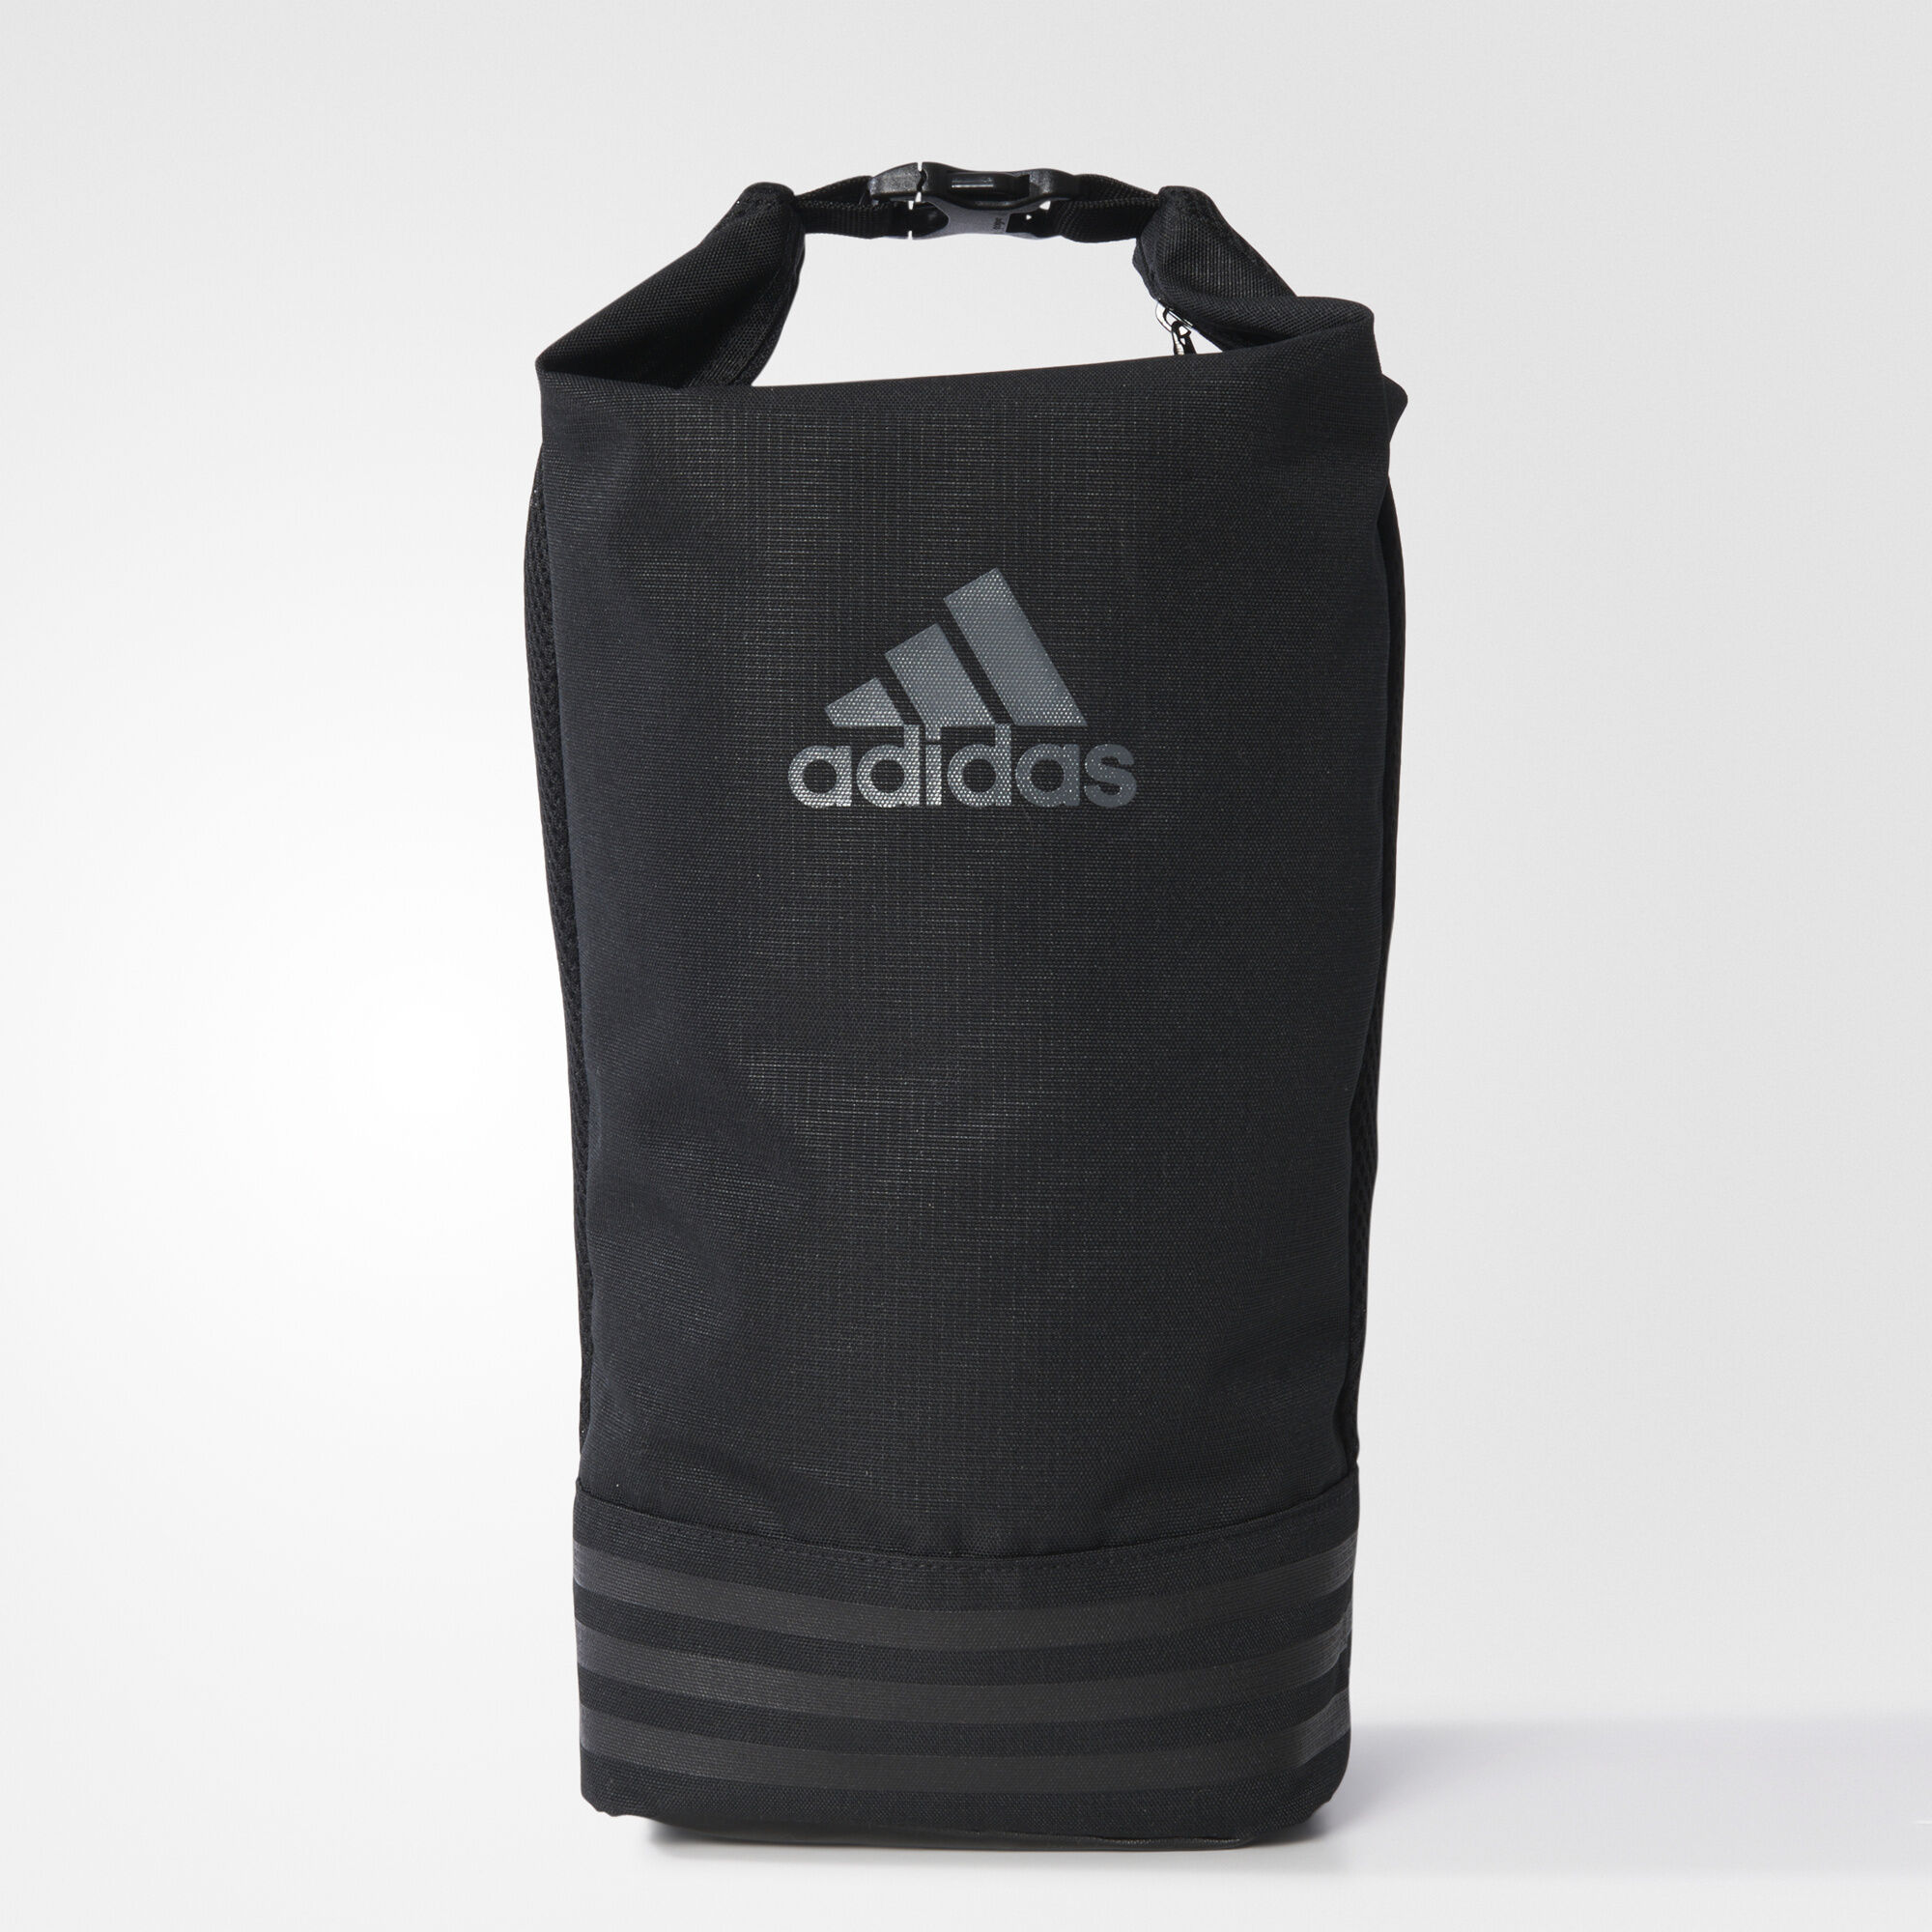 cee9a2082495 Buy adidas performance gym bag   OFF68% Discounted